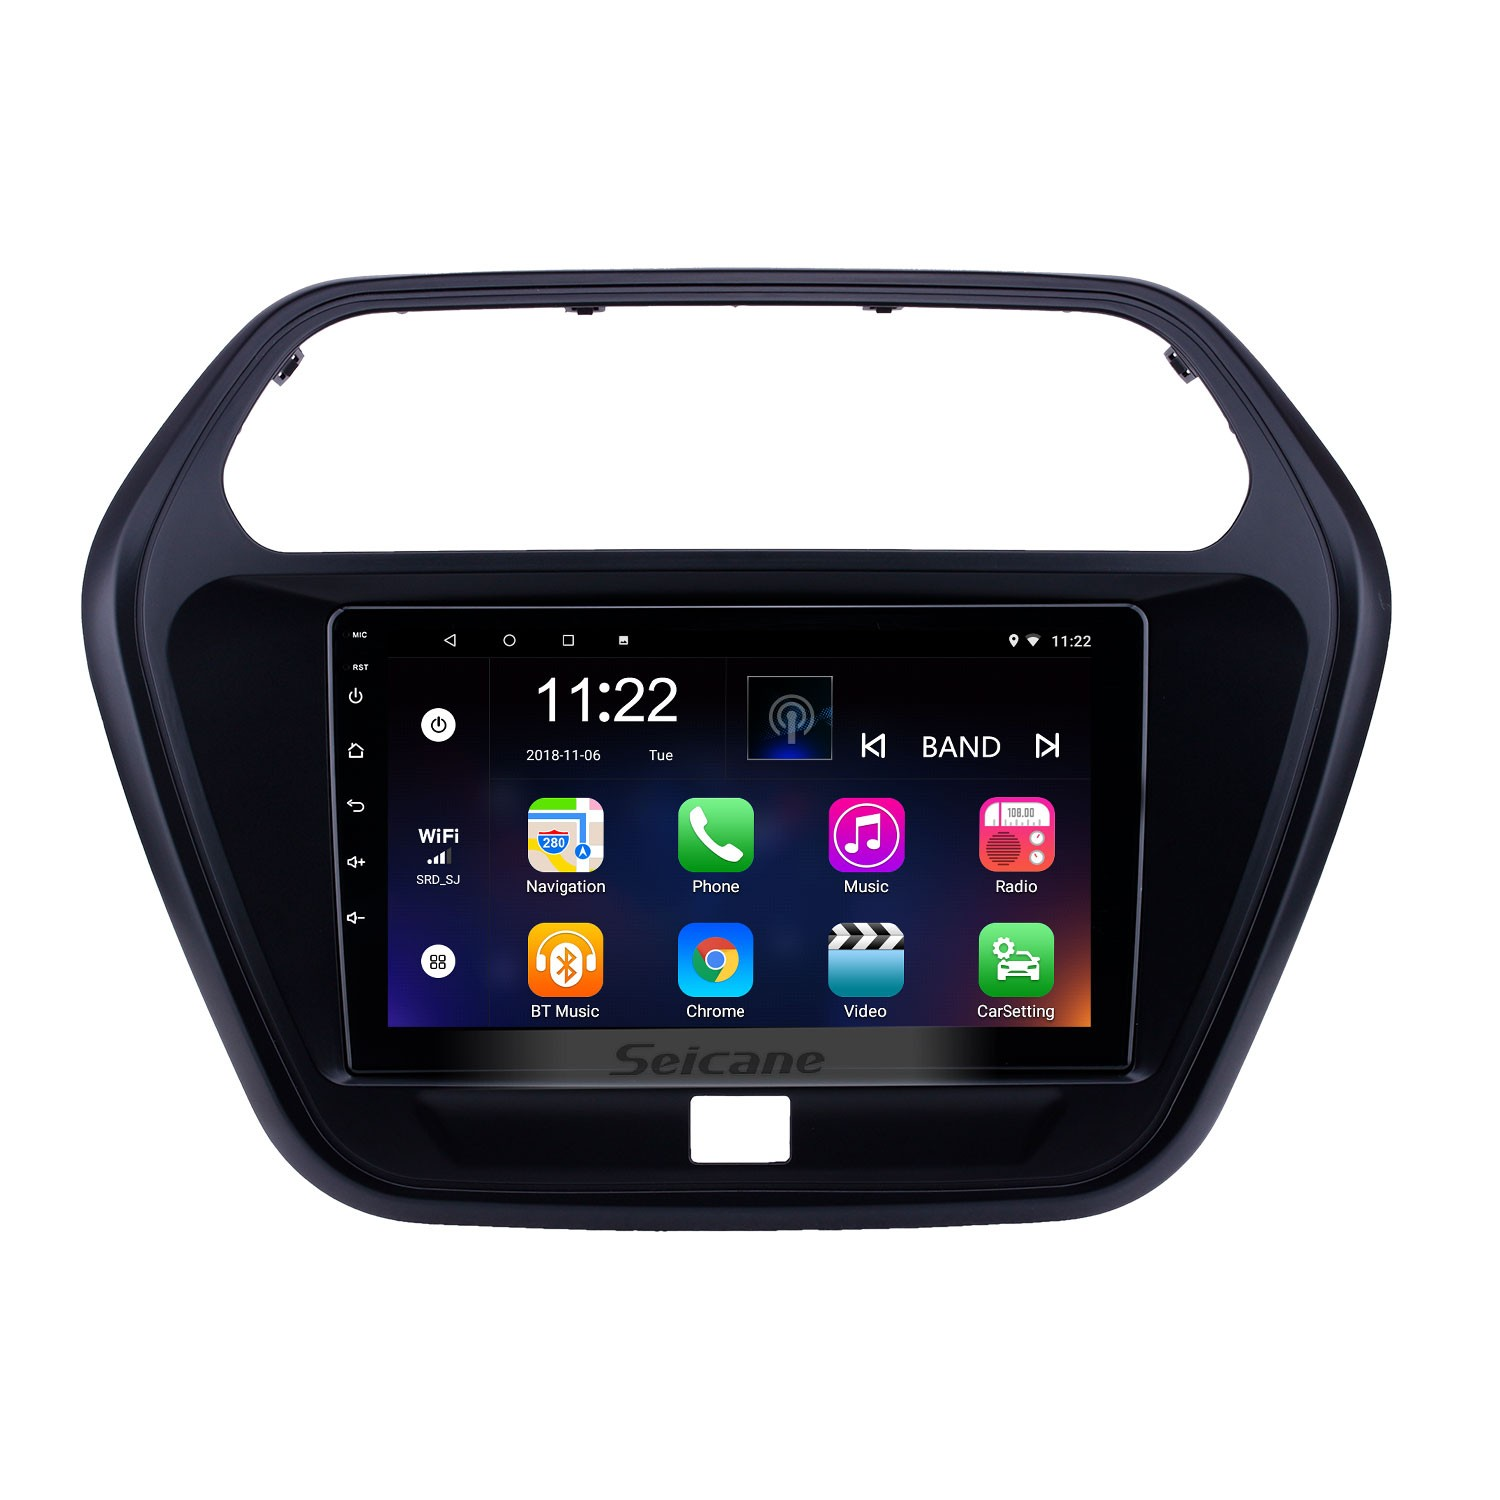 2015 Mahindra TUV300 Android 8 1 Touchscreen 9 inch Head Unit